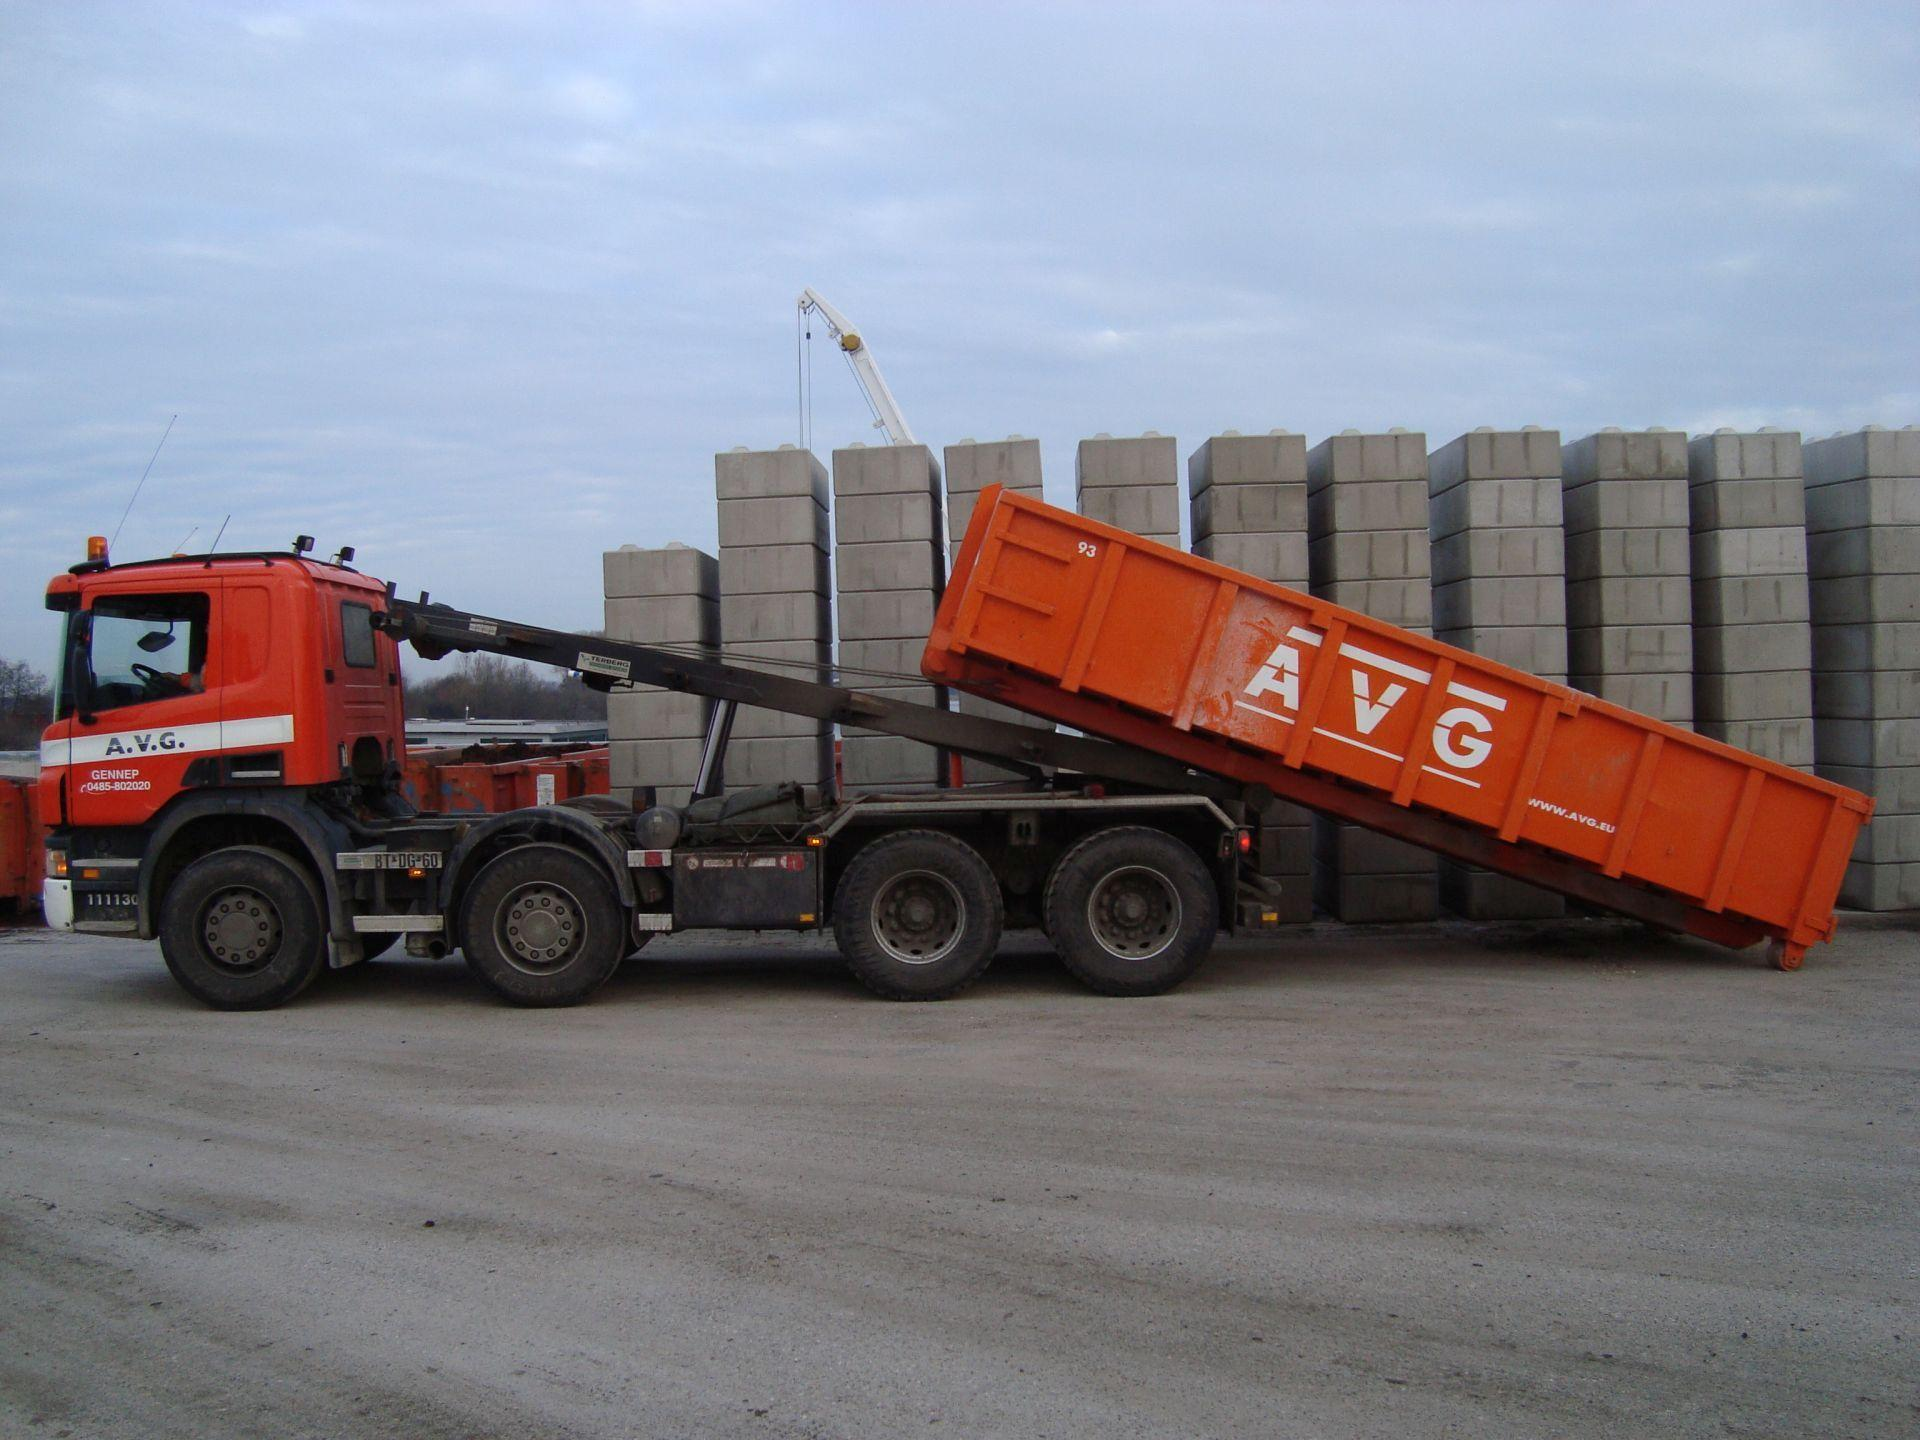 lange-container-7-avg-bouwstoffen